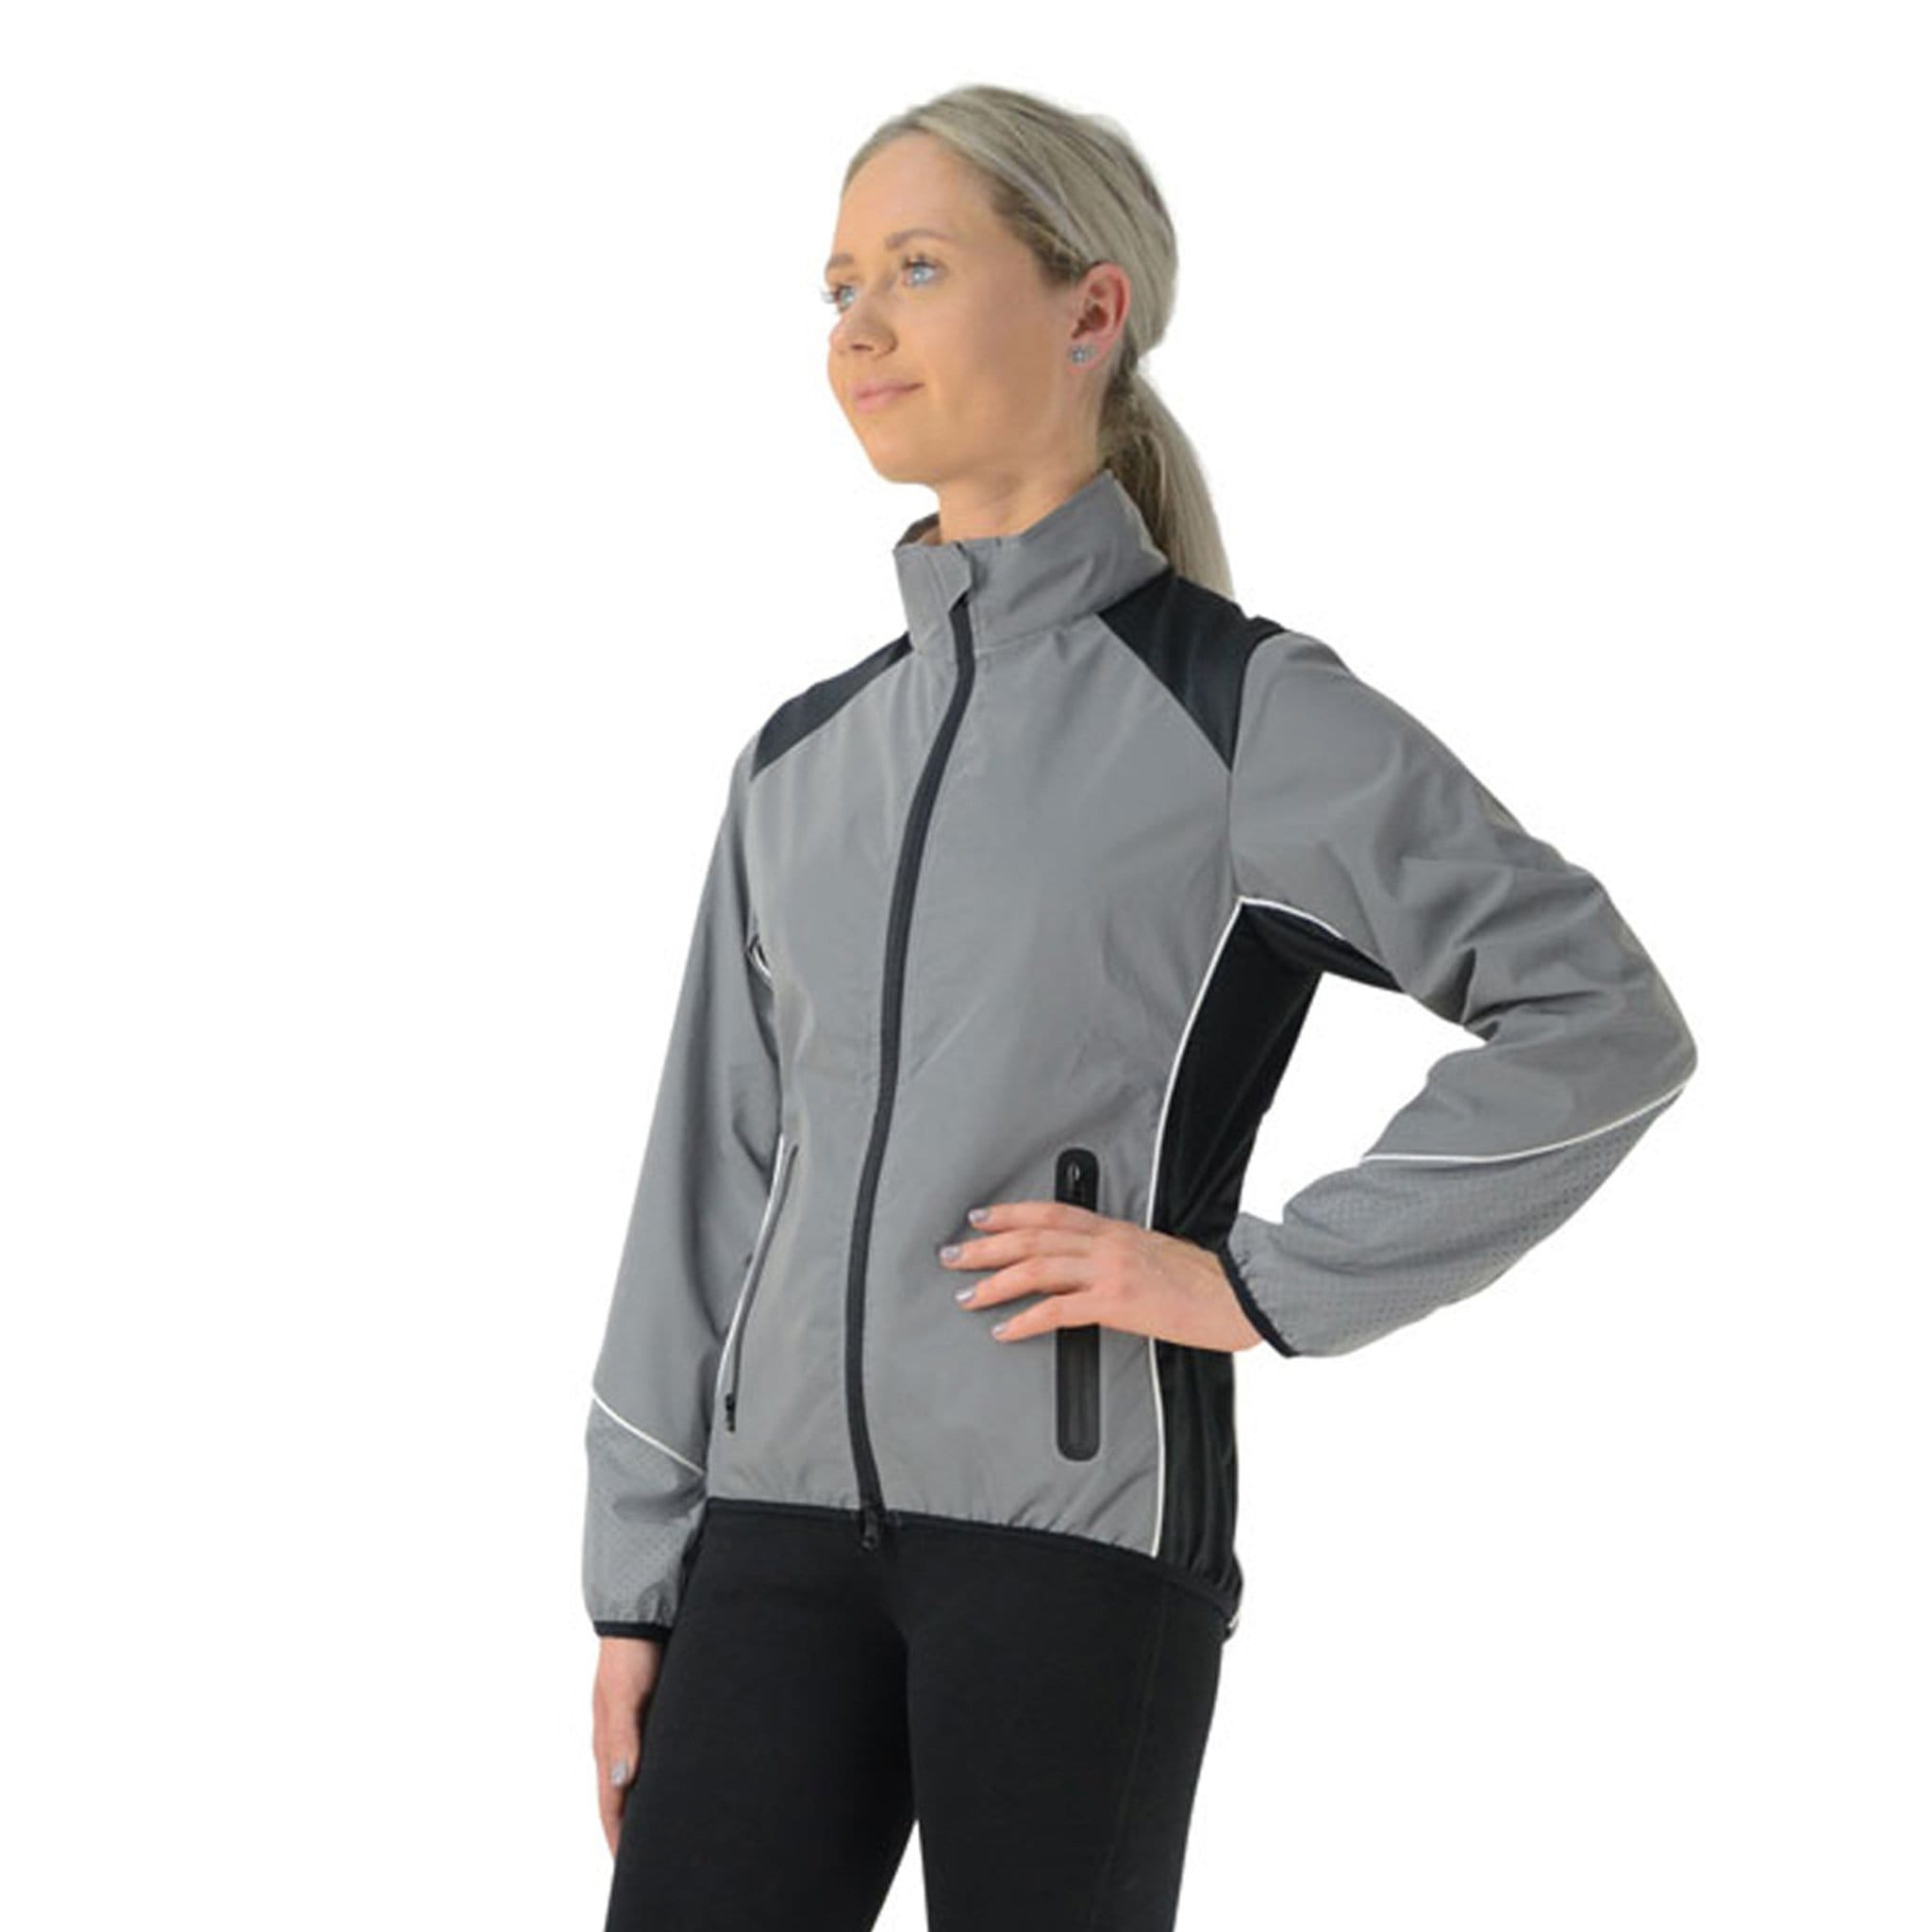 HyVIZ Silva Mercury Reflective Jacket 18098 On Model Front